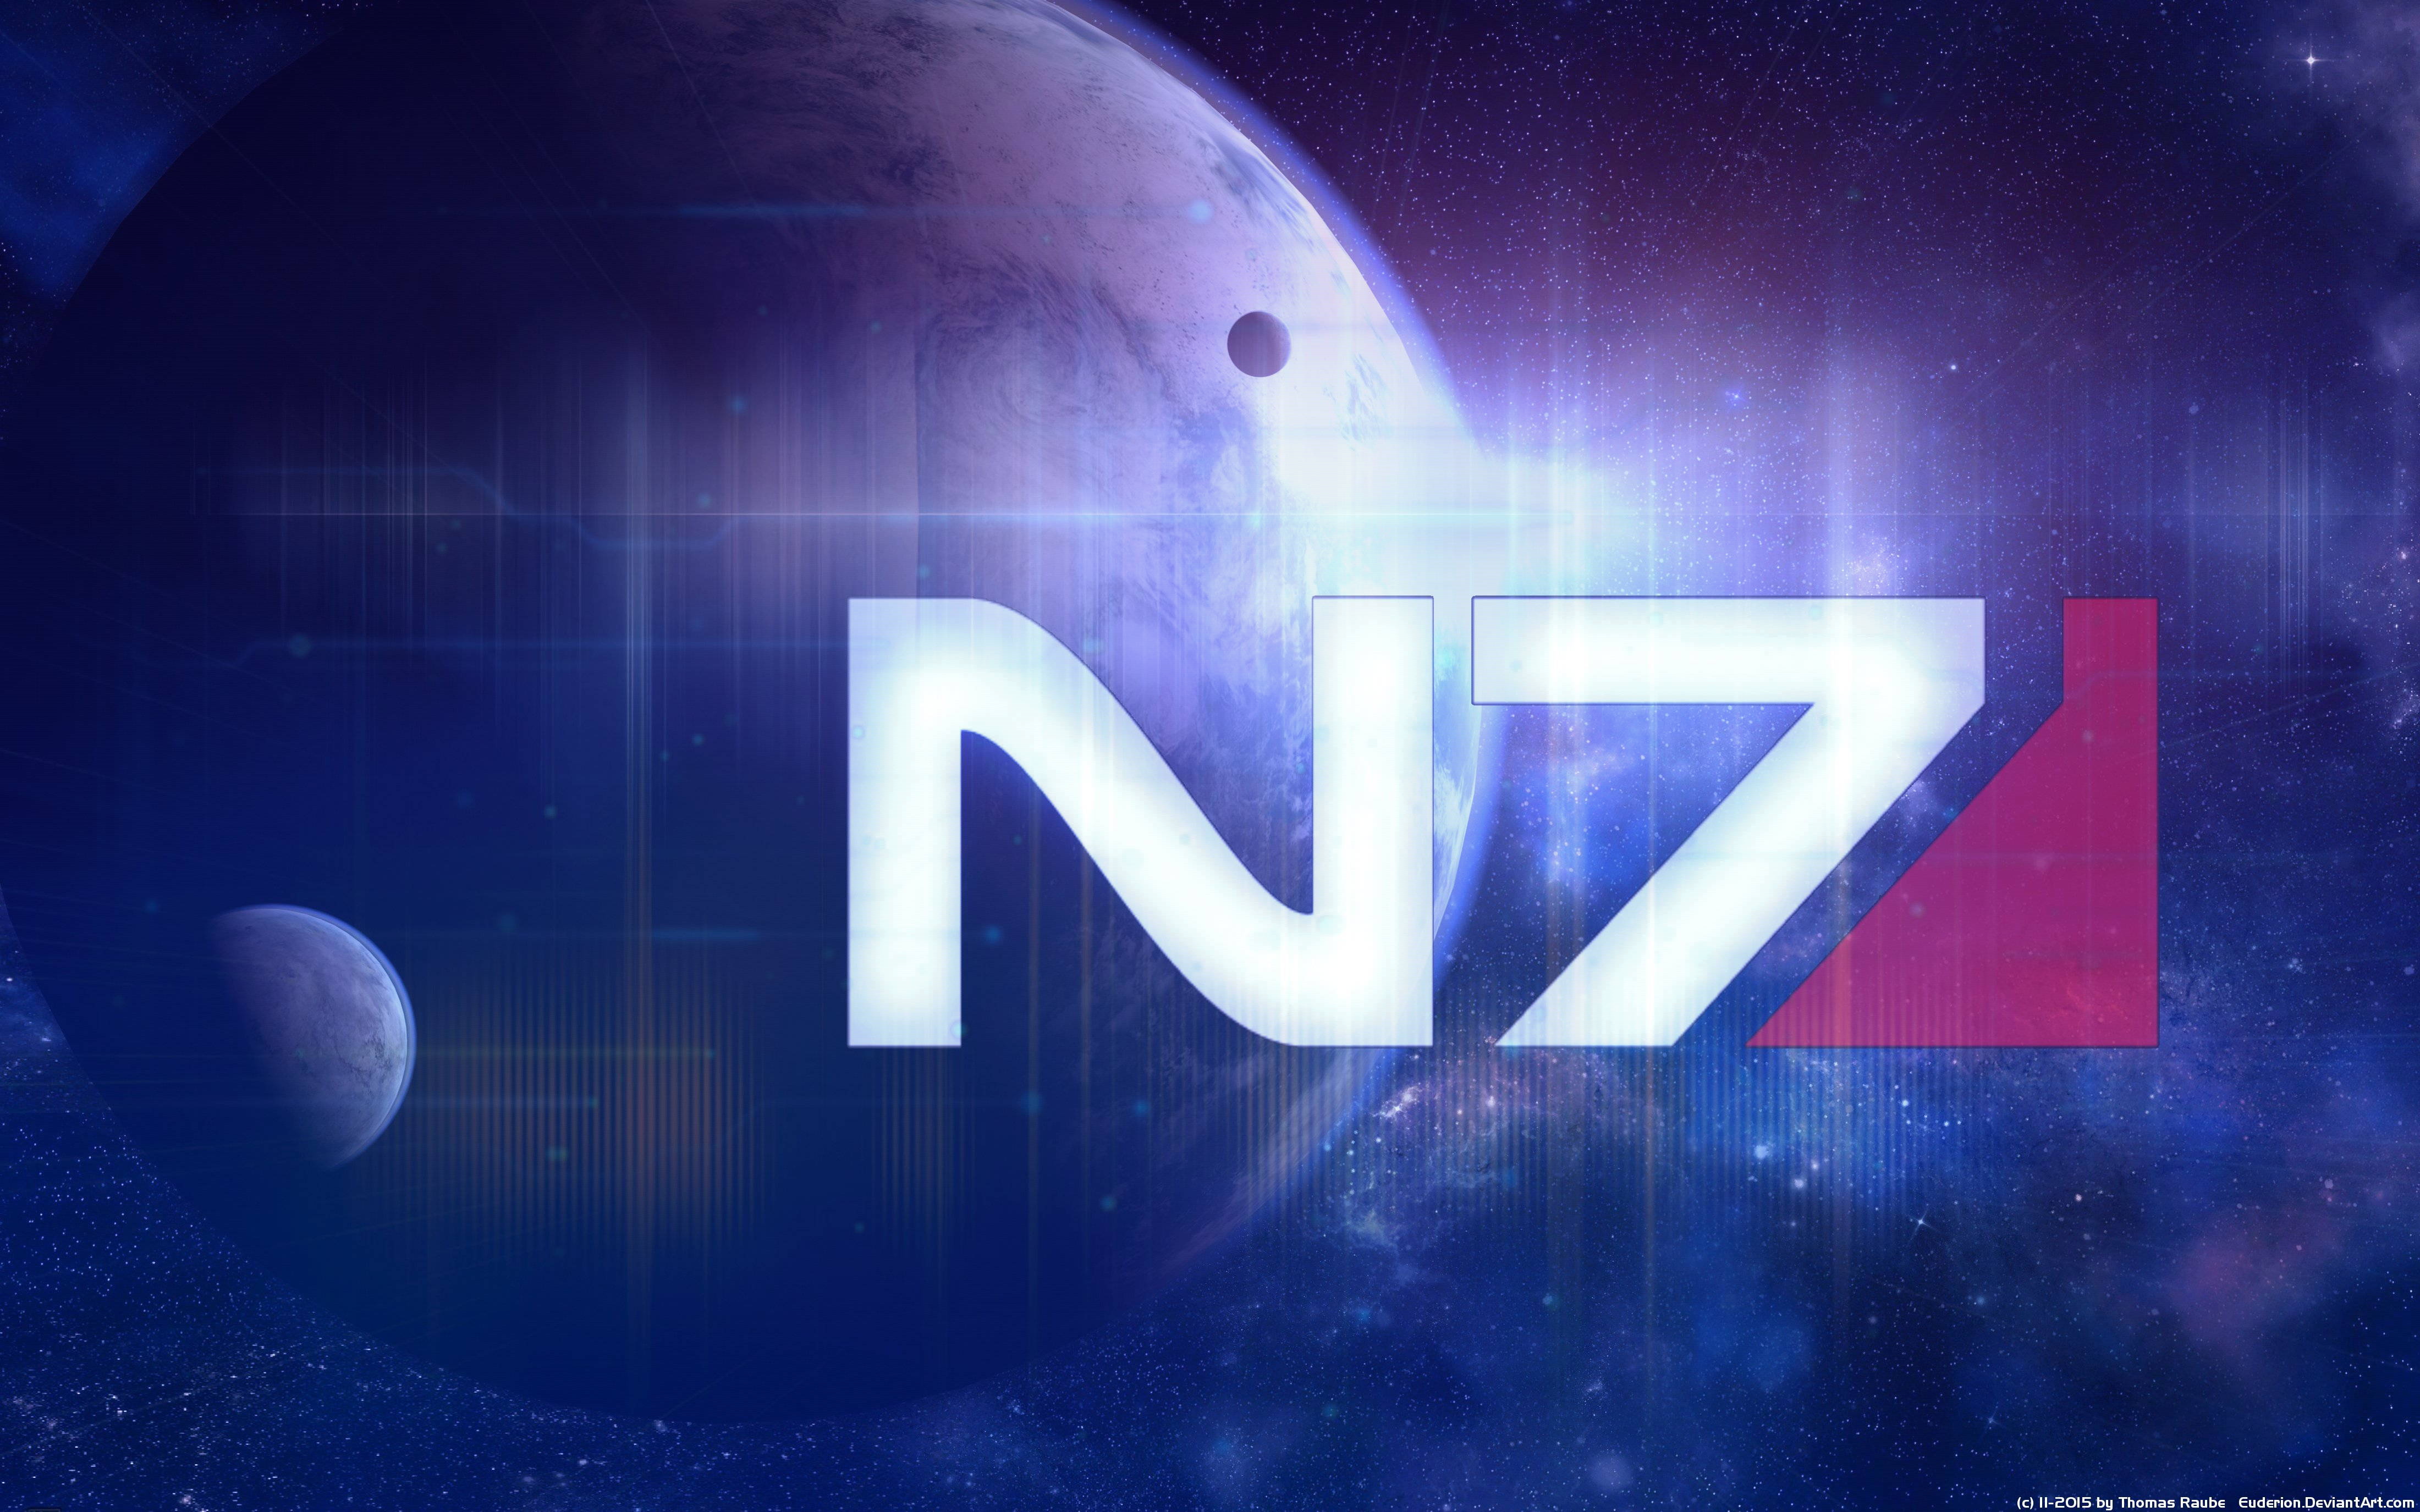 N7 Day 2015 Wallpaper by Euderion